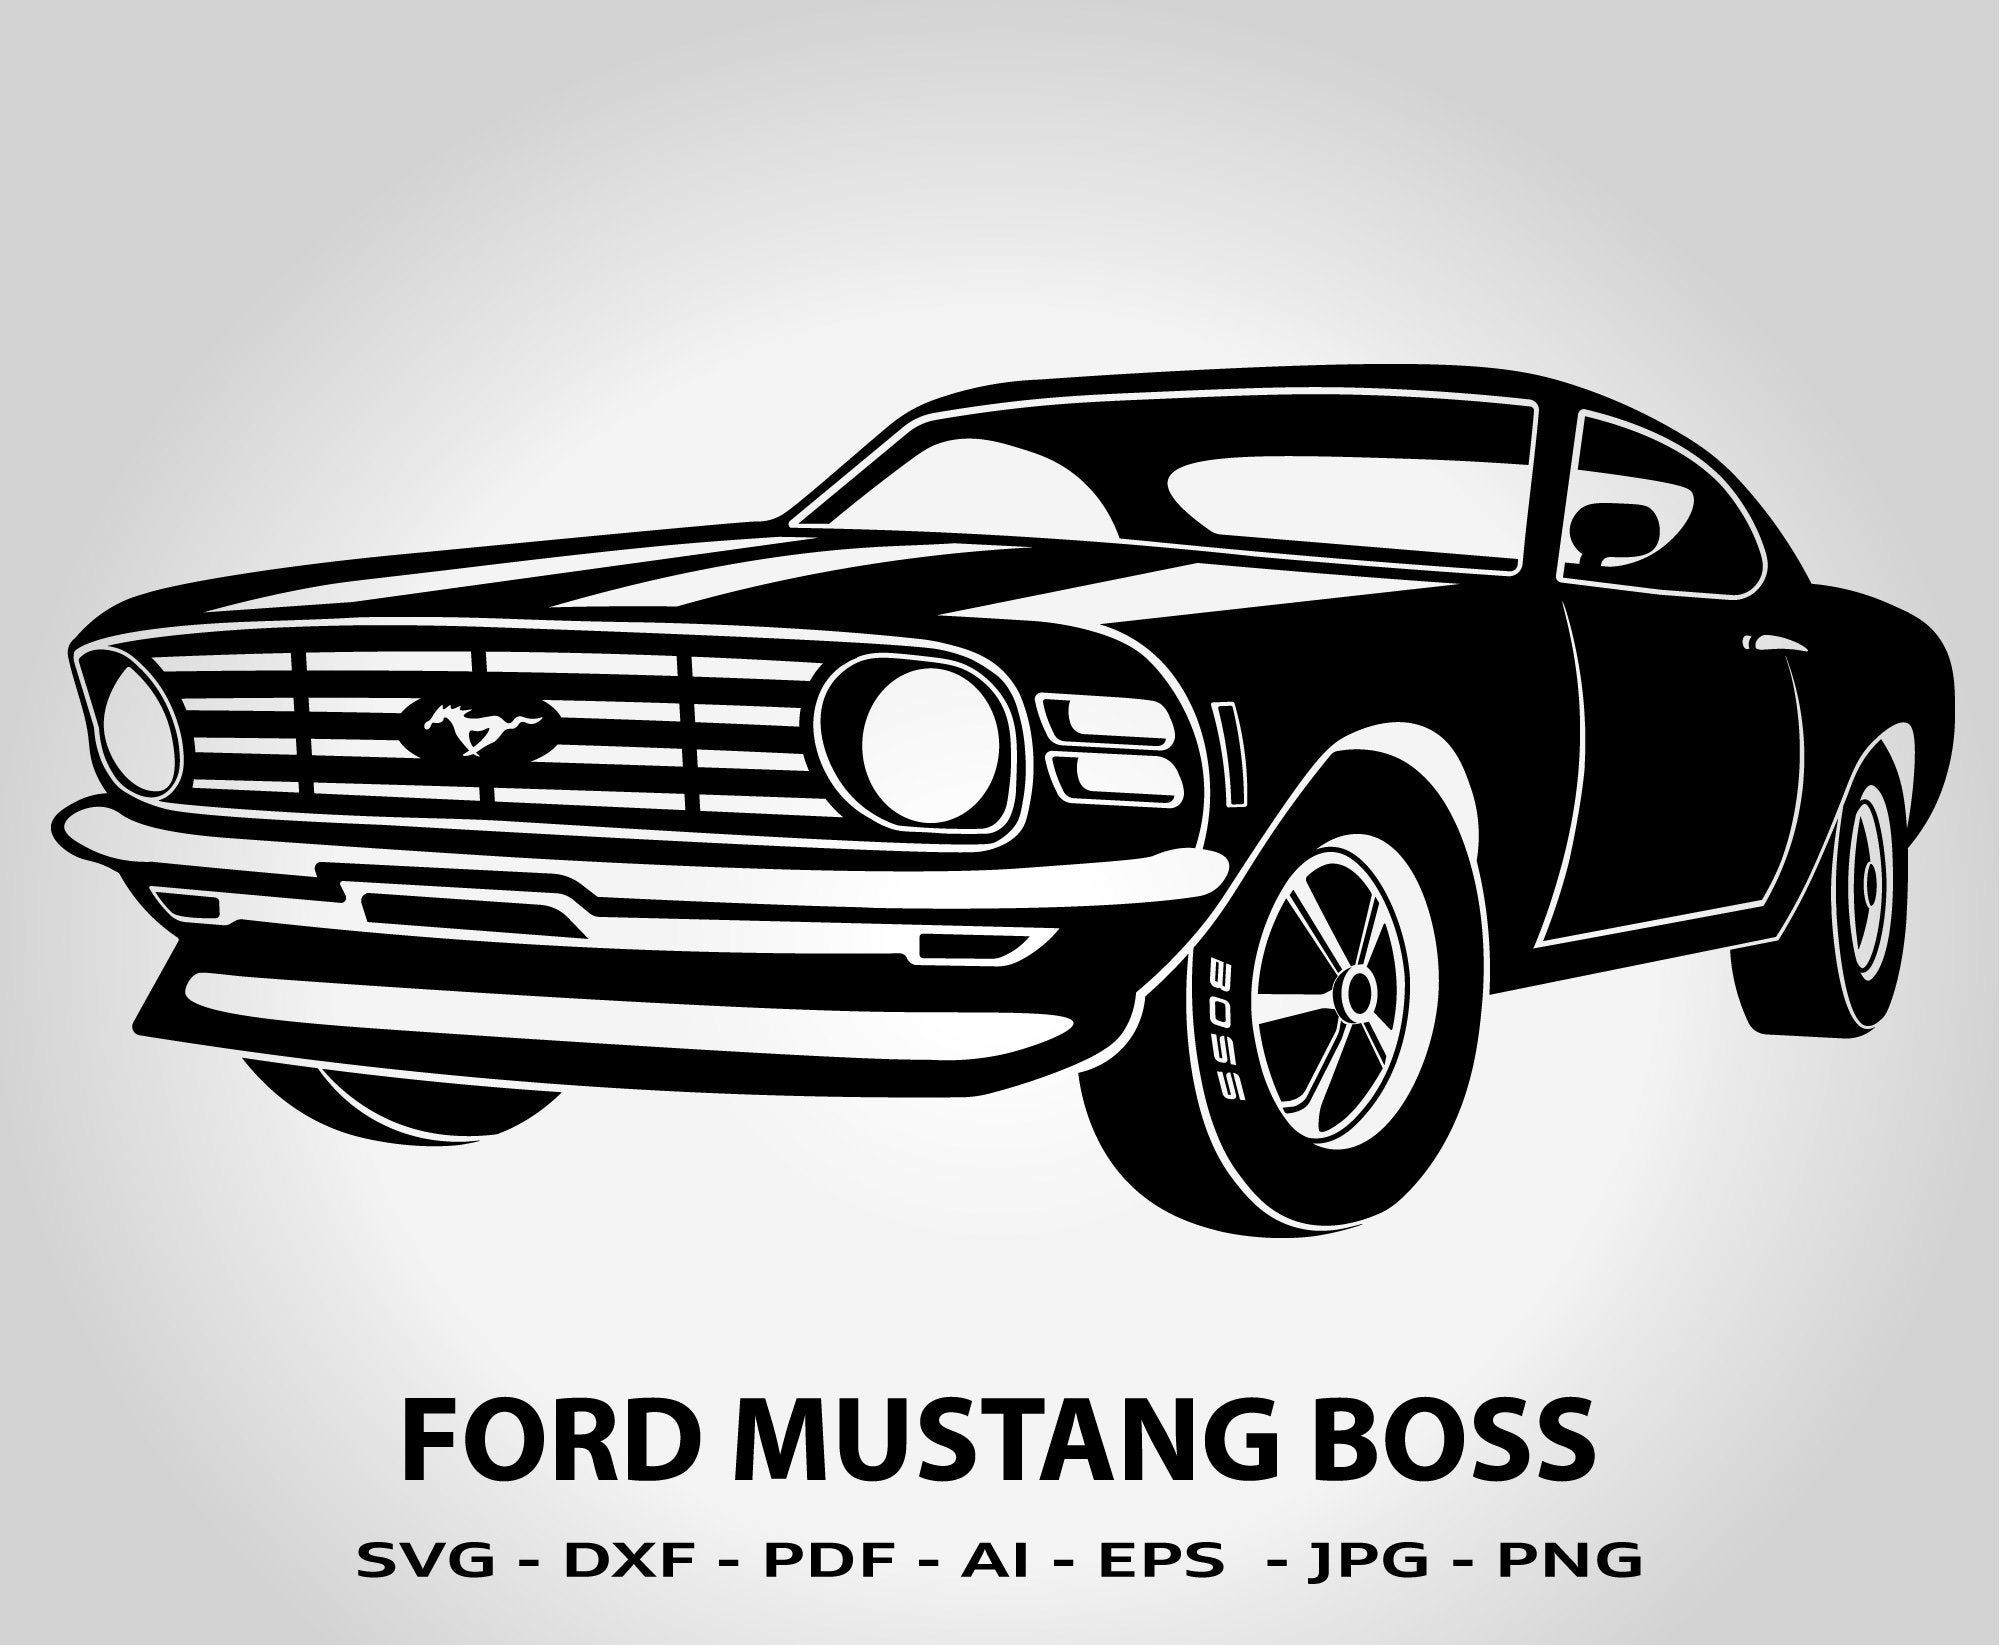 Ford Mustang Boss 1970 Silhouette Muscle Car Antique Old Etsy Mustang Car Silhouette Ford Mustang Boss